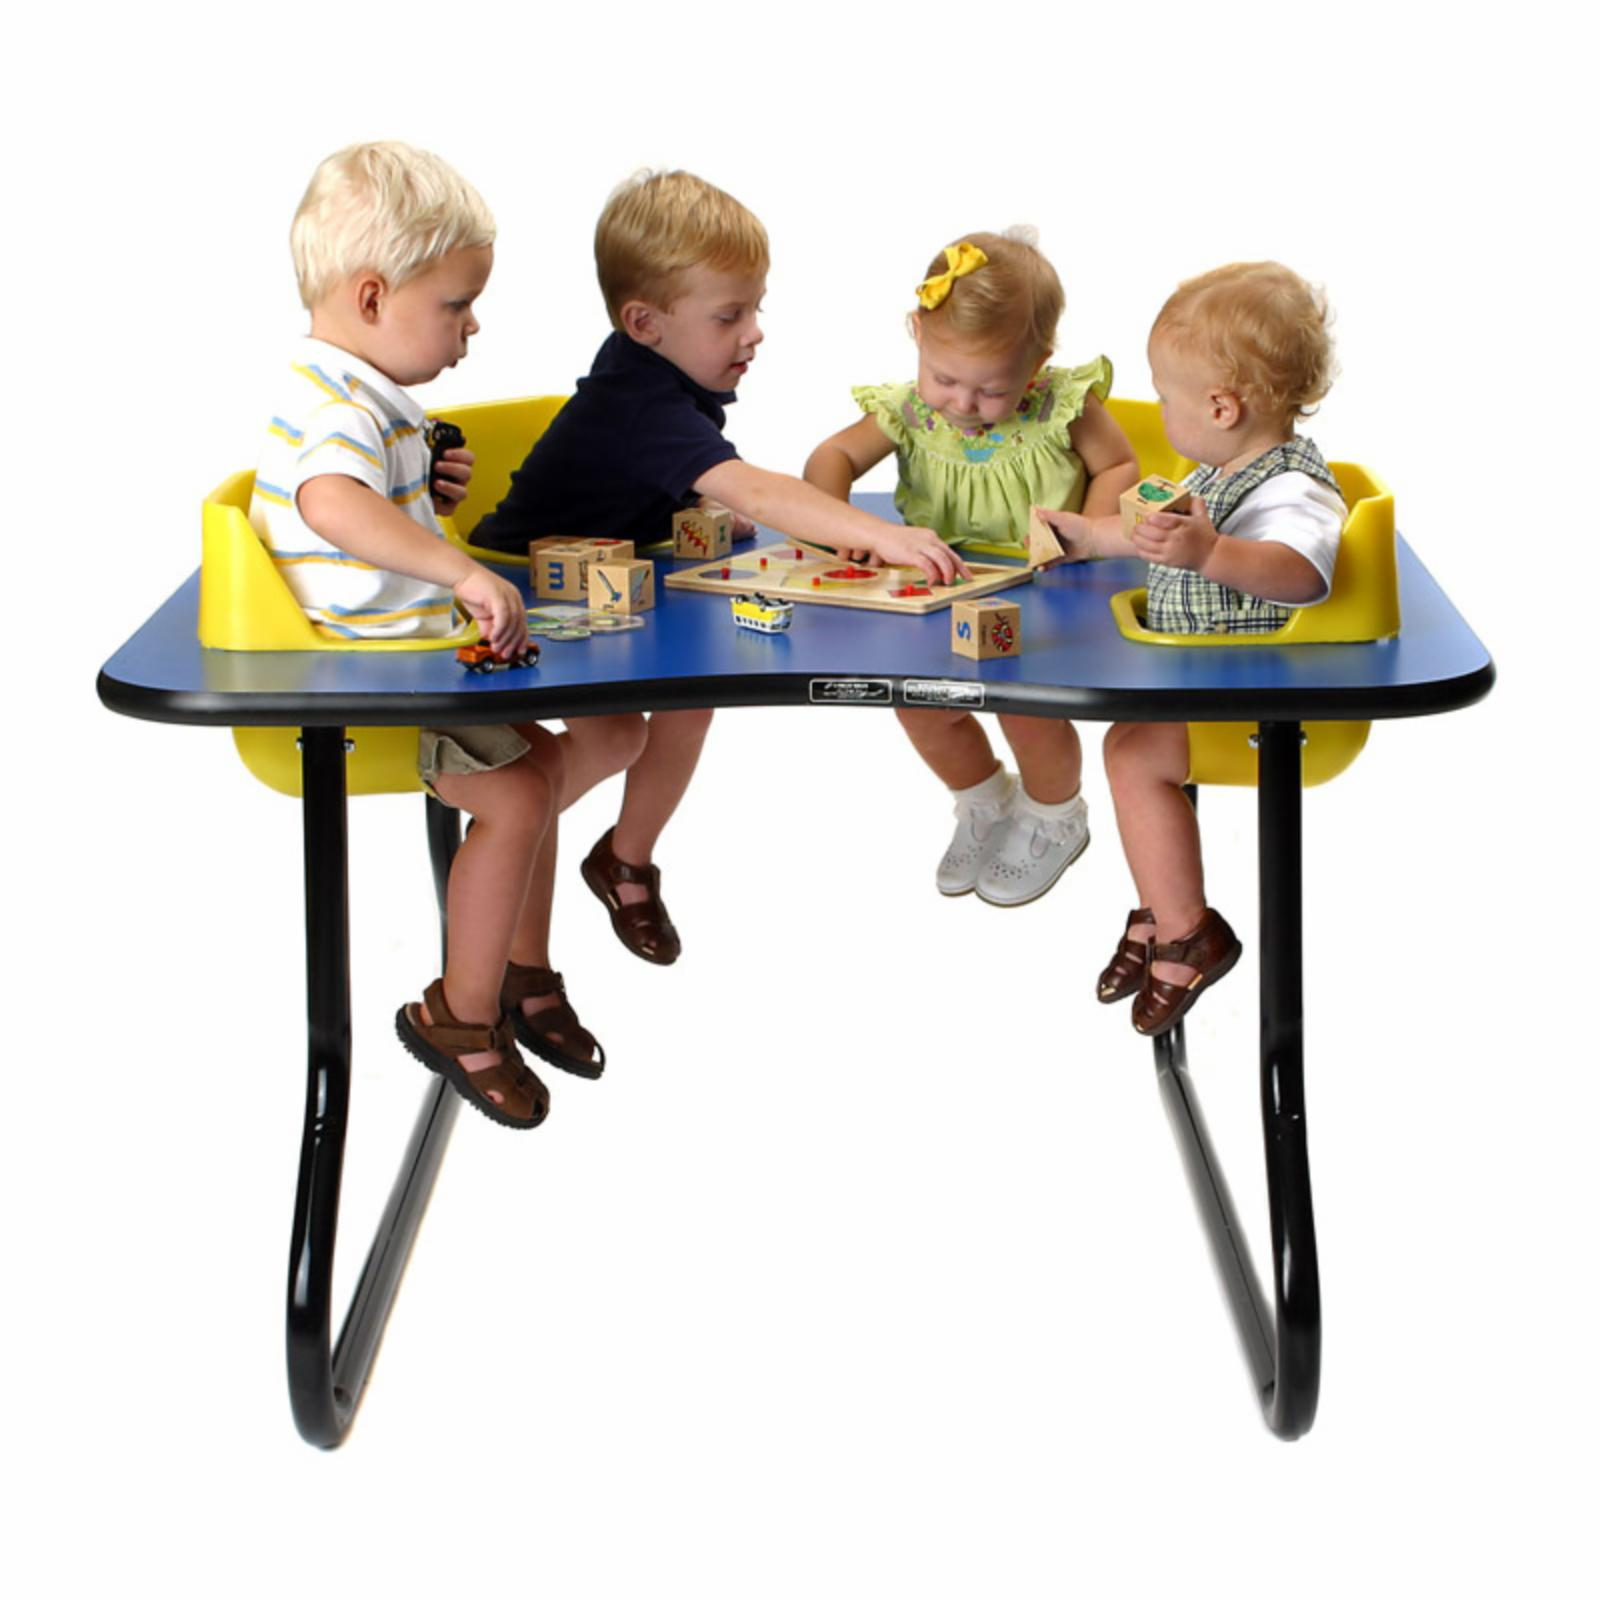 Toddler Tables 4 Seat Space Saver Toddler Activity Table ...